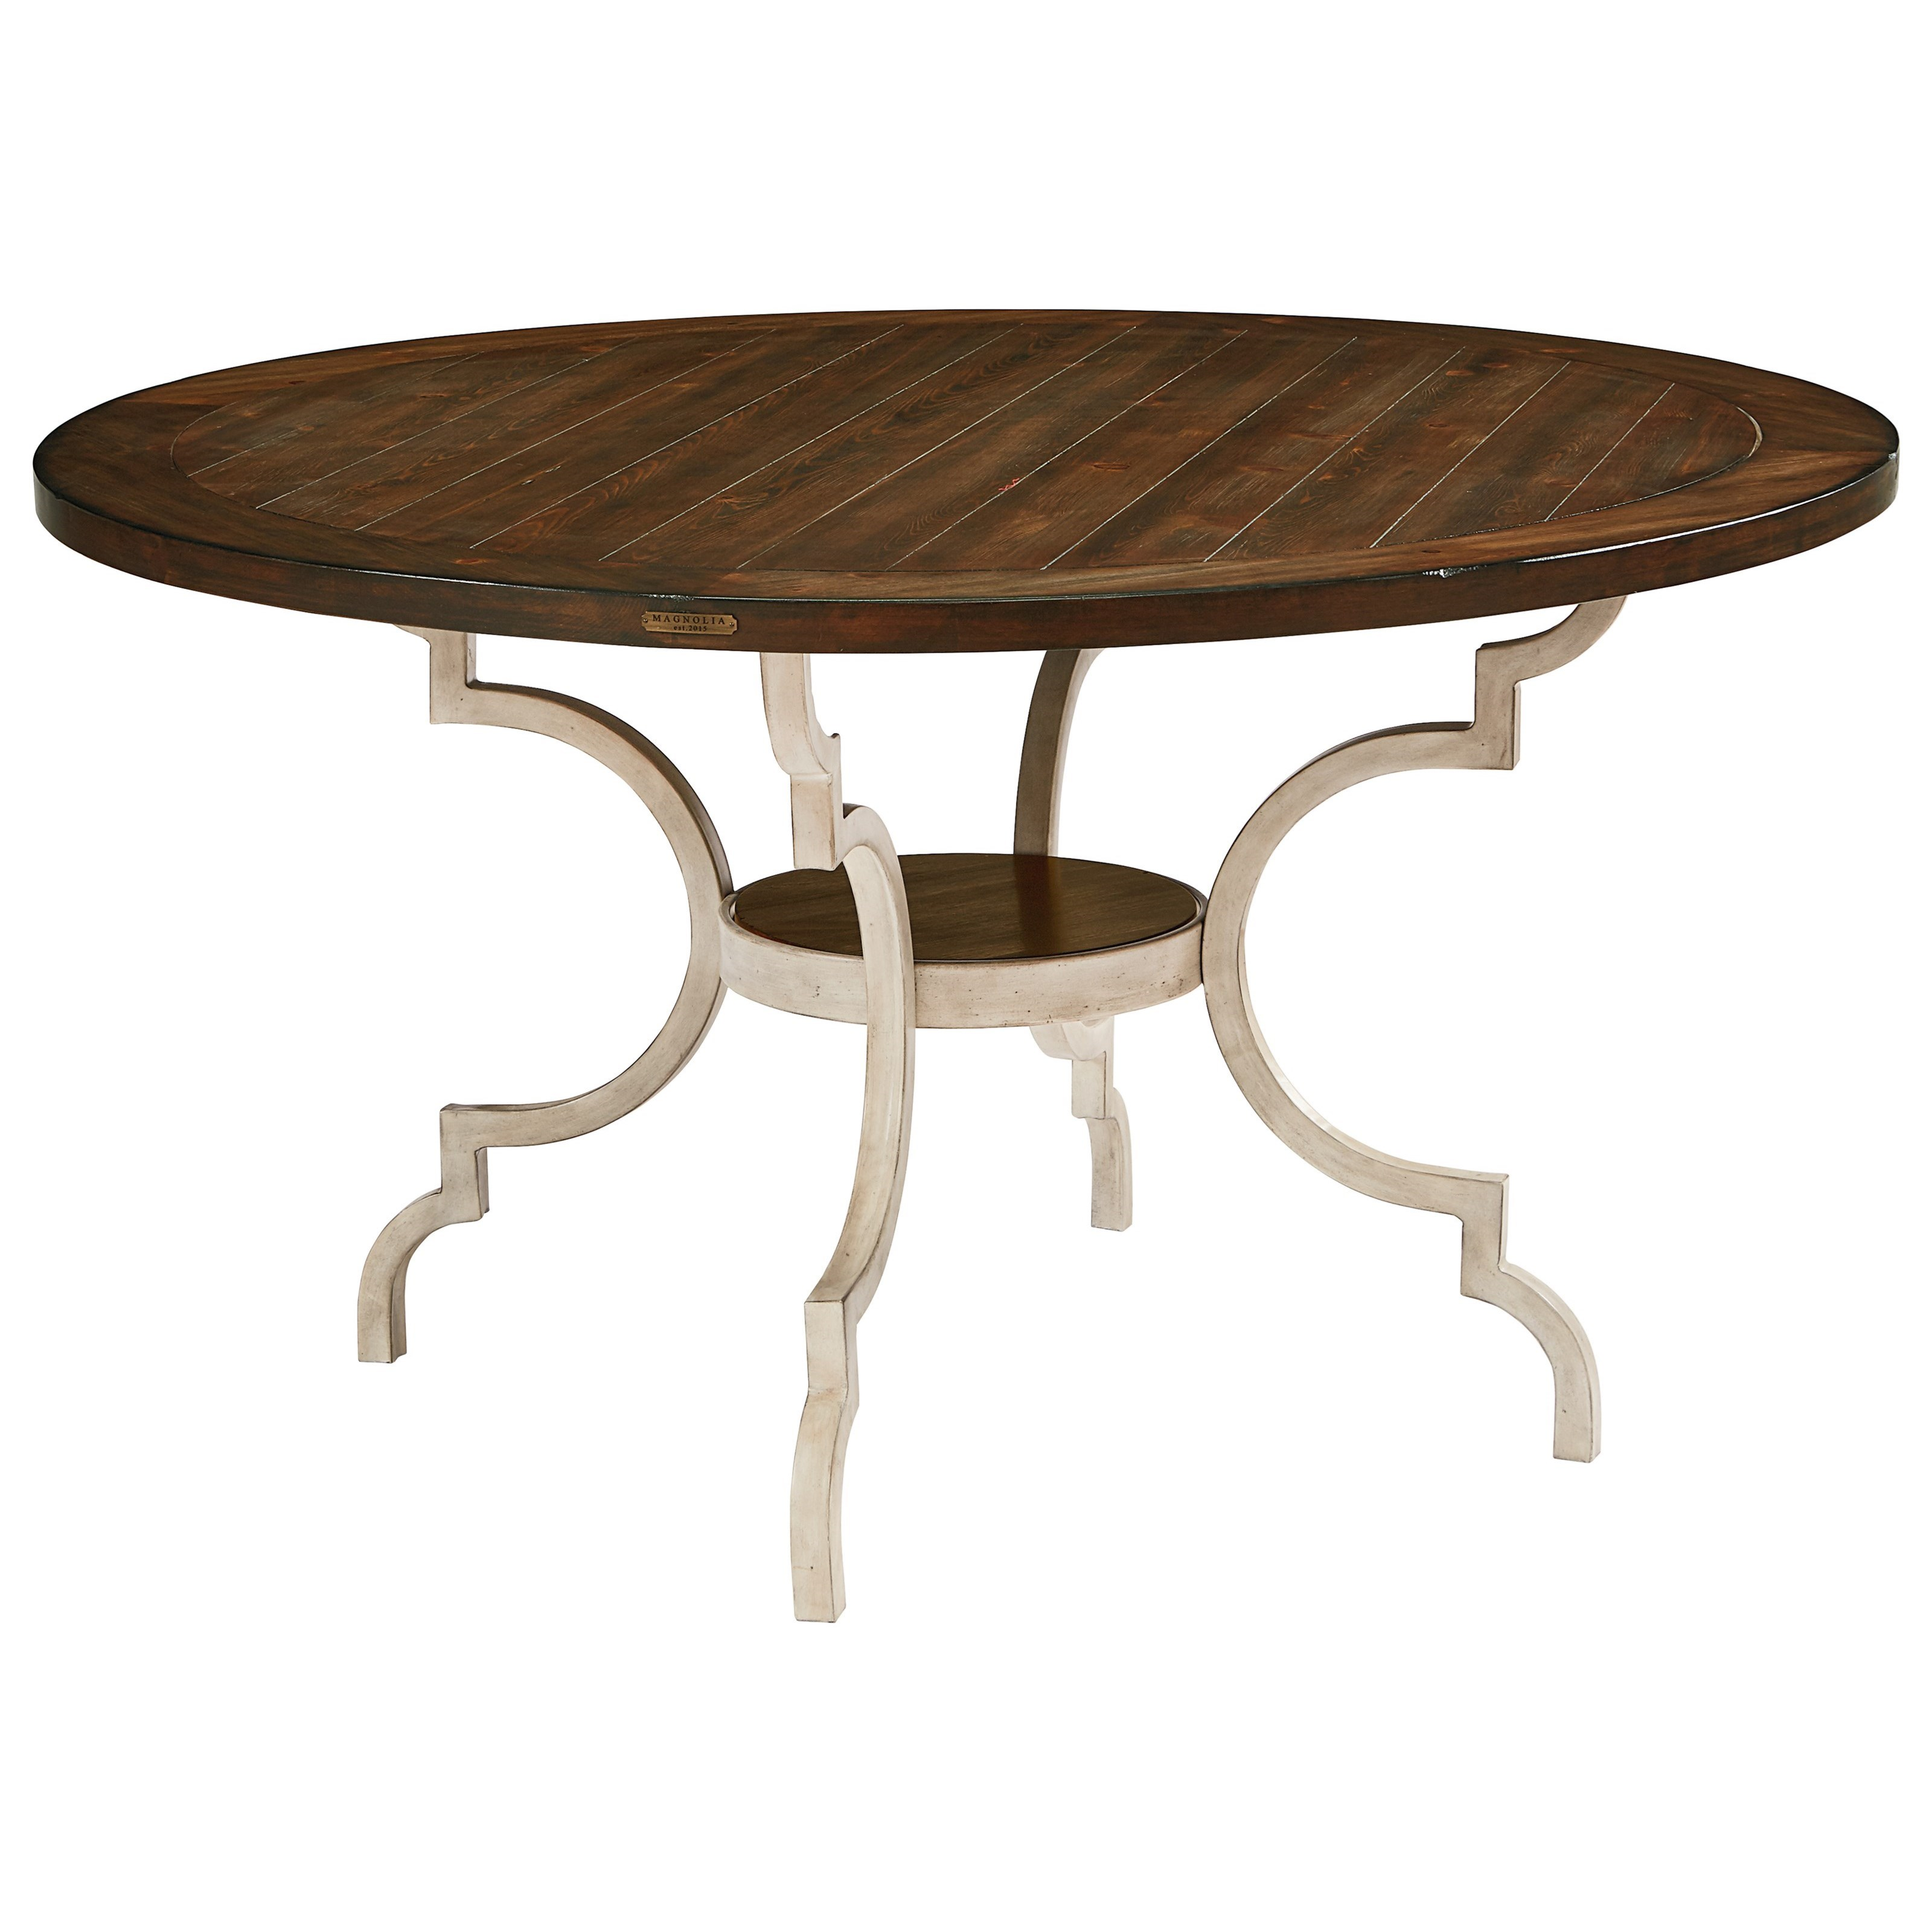 Breakfast table wood top w metal base by magnolia home for Magnolia dining table